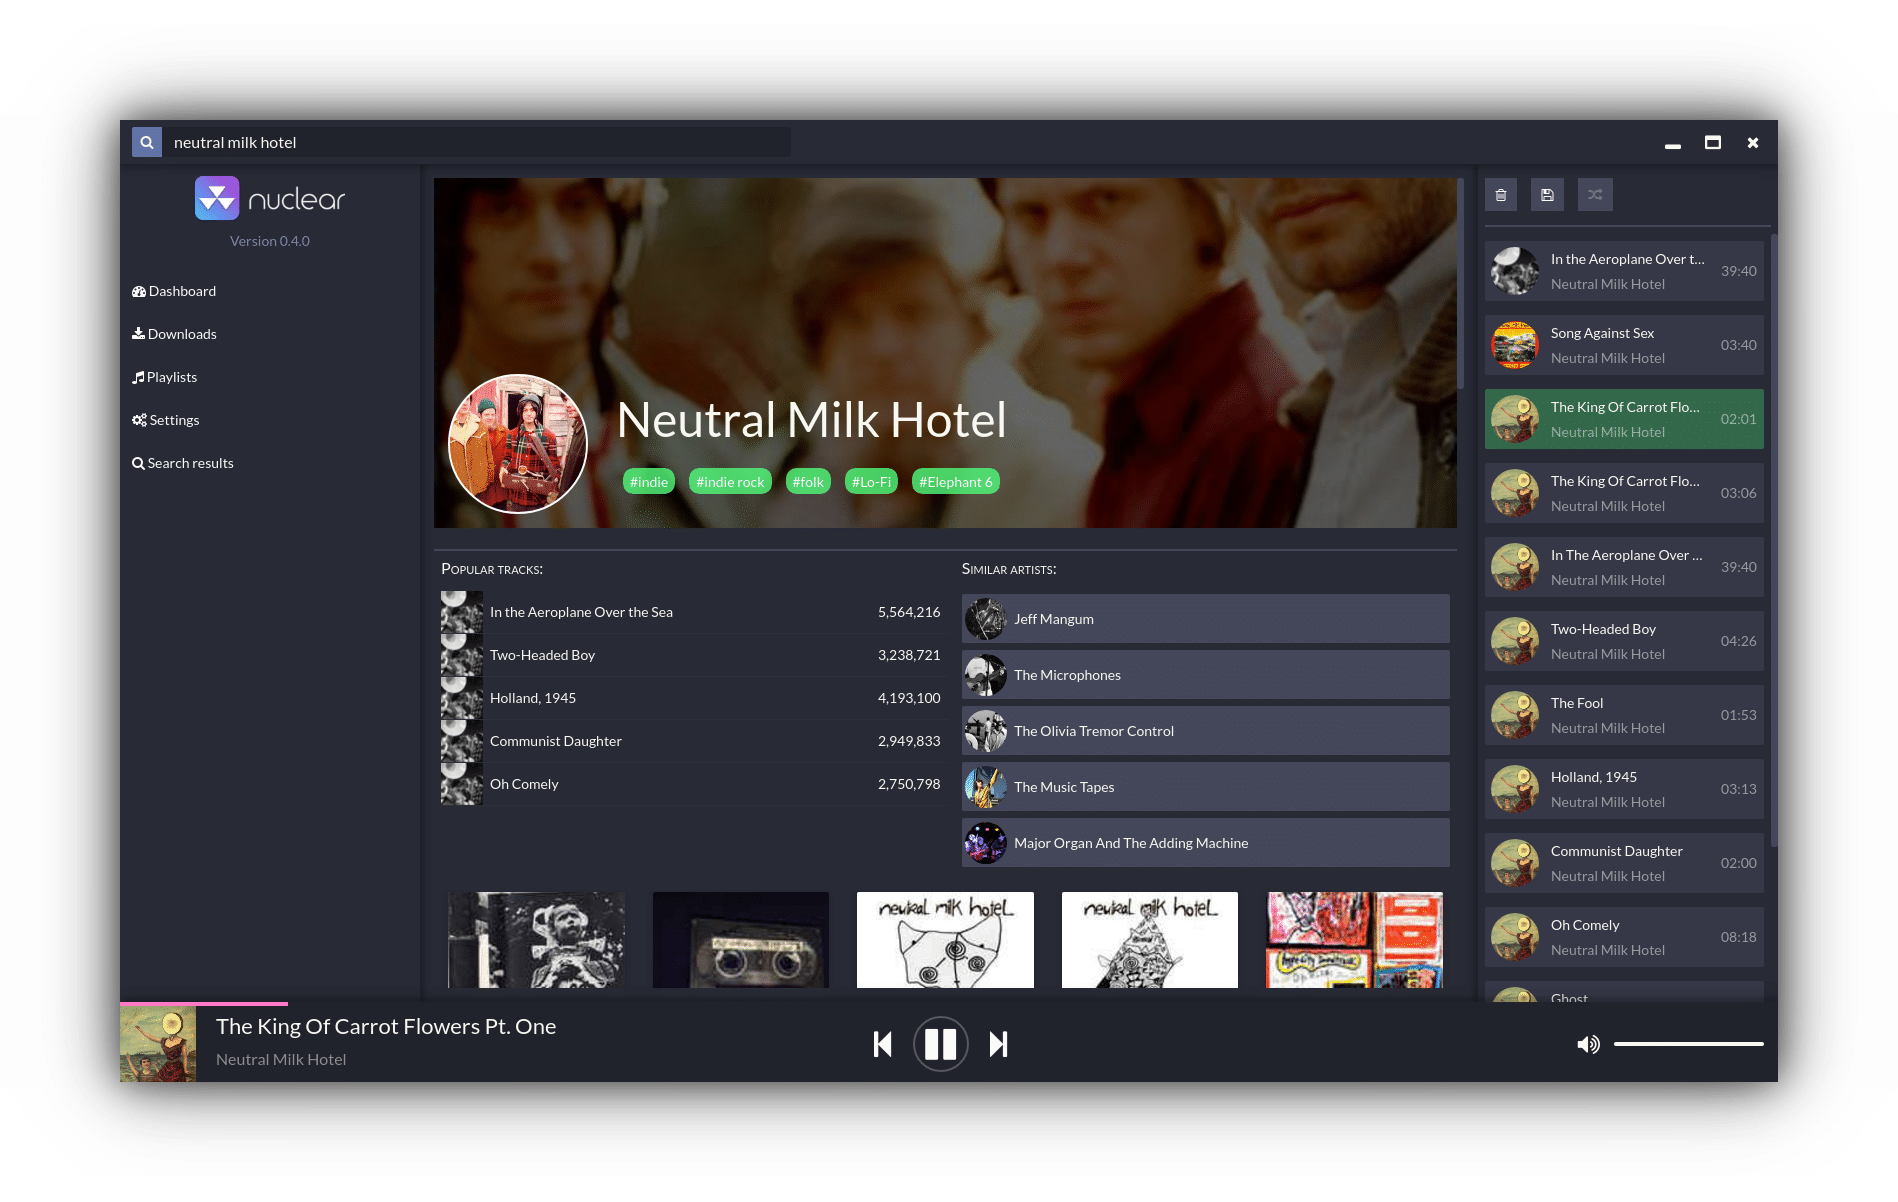 Nuclear Music Player no Ubuntu